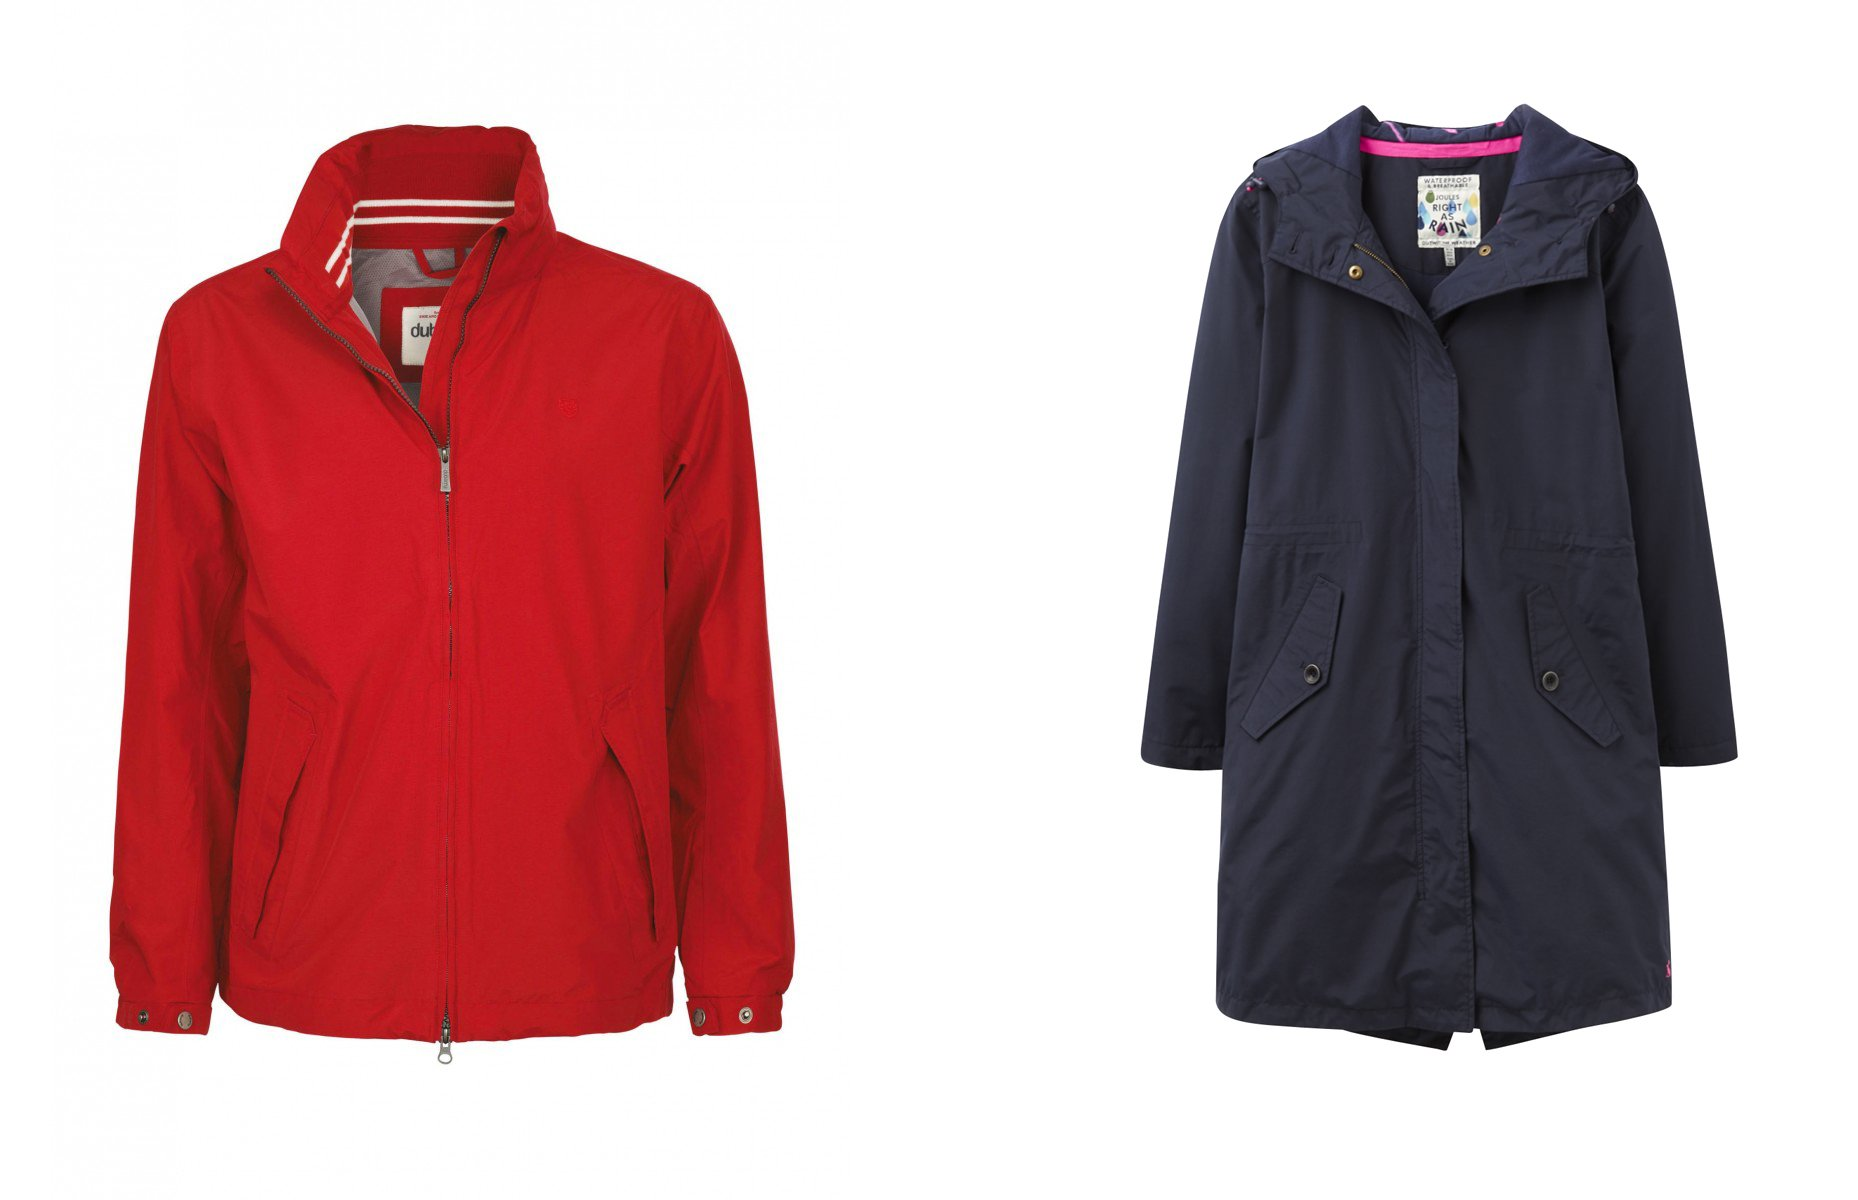 dubarry harrington jacket, joules waterproof coat